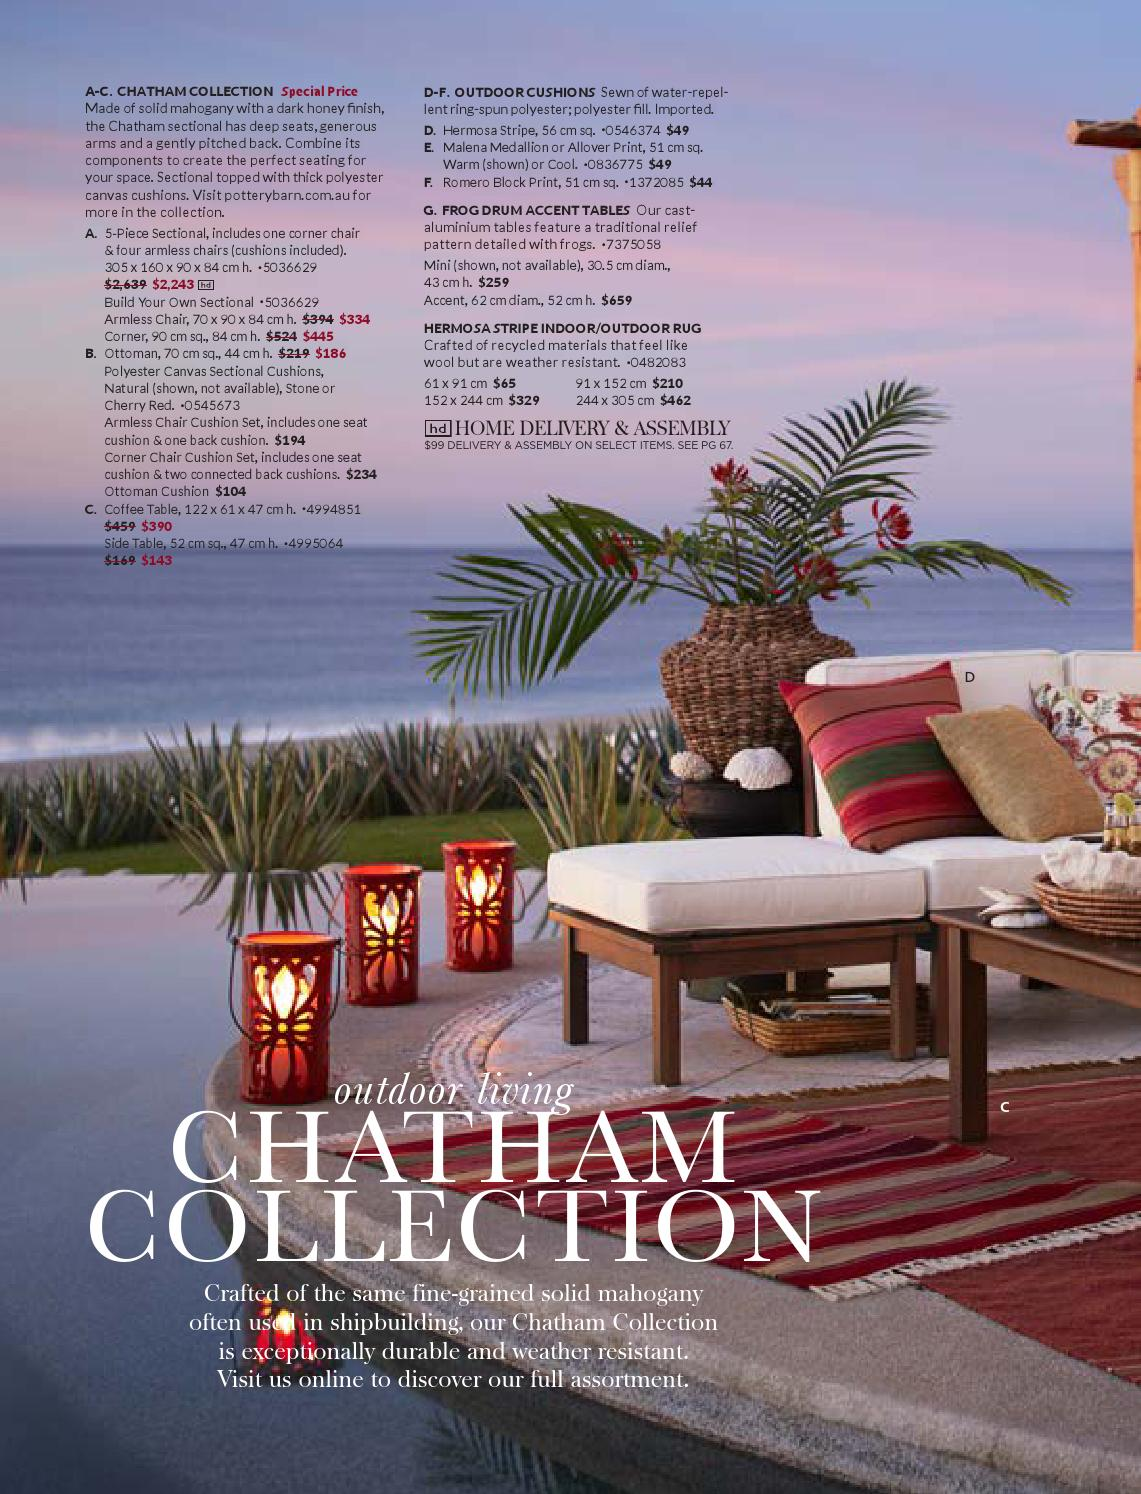 pottery barn summer catalogue williams page frog drum accent table sonoma inc issuu huge wall clock large lucite coffee galvanized metal signature bedroom furniture wooden storage